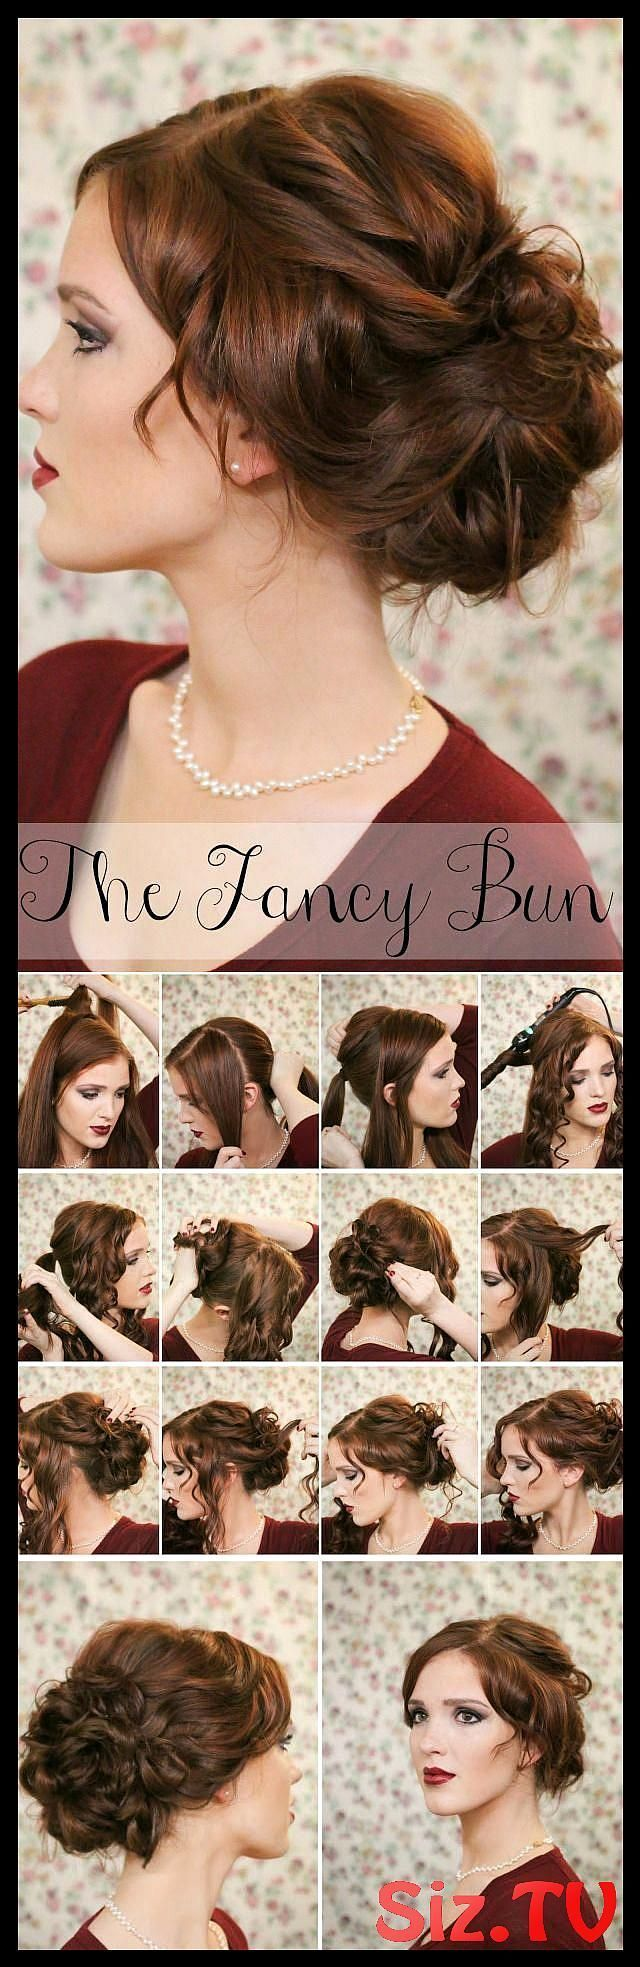 Top 25 Messy Hair Bun Tutorials Perfect For Those #Bun #hai #hair #high_messy_bun #Lazy